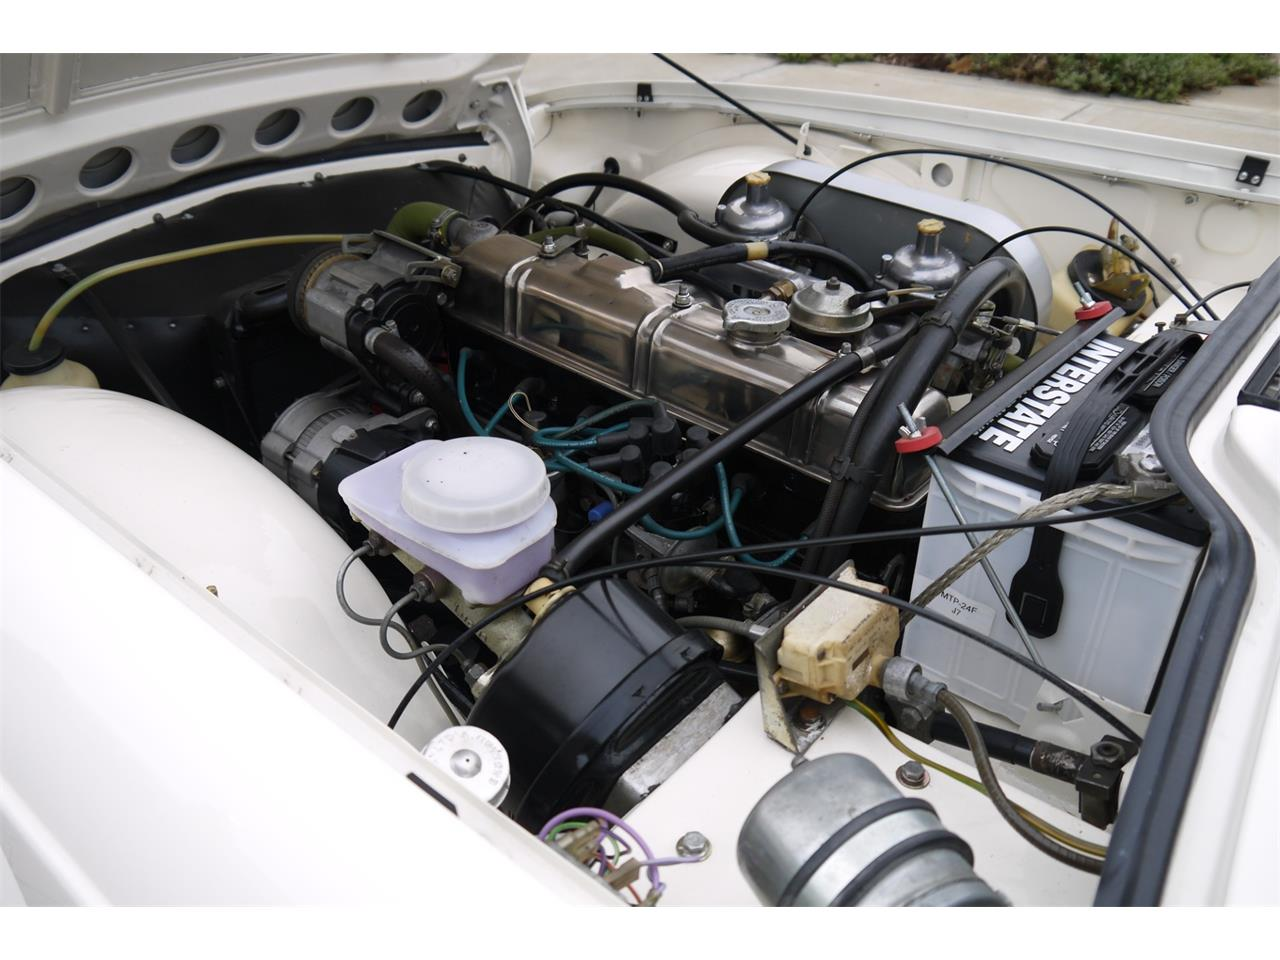 1976 Triumph TR6 for sale in Brentwood, TN – photo 45